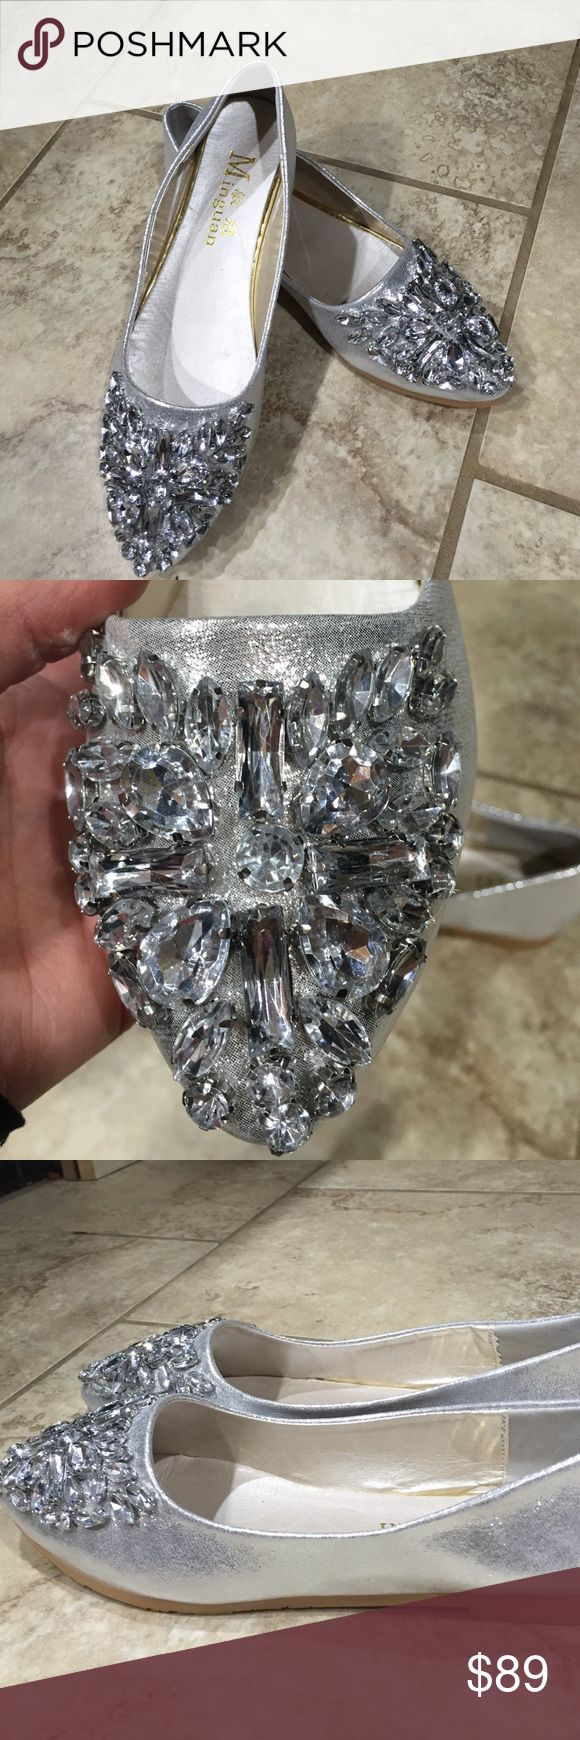 Nwt rhinestone super bling flat shoes wedding prom Nwt rhinestone super bling flat shoes wedding prom gorgeous silver ballet flats these are a gorgeous metallic sequin SO BLINGY AND FABULOUS Shoes